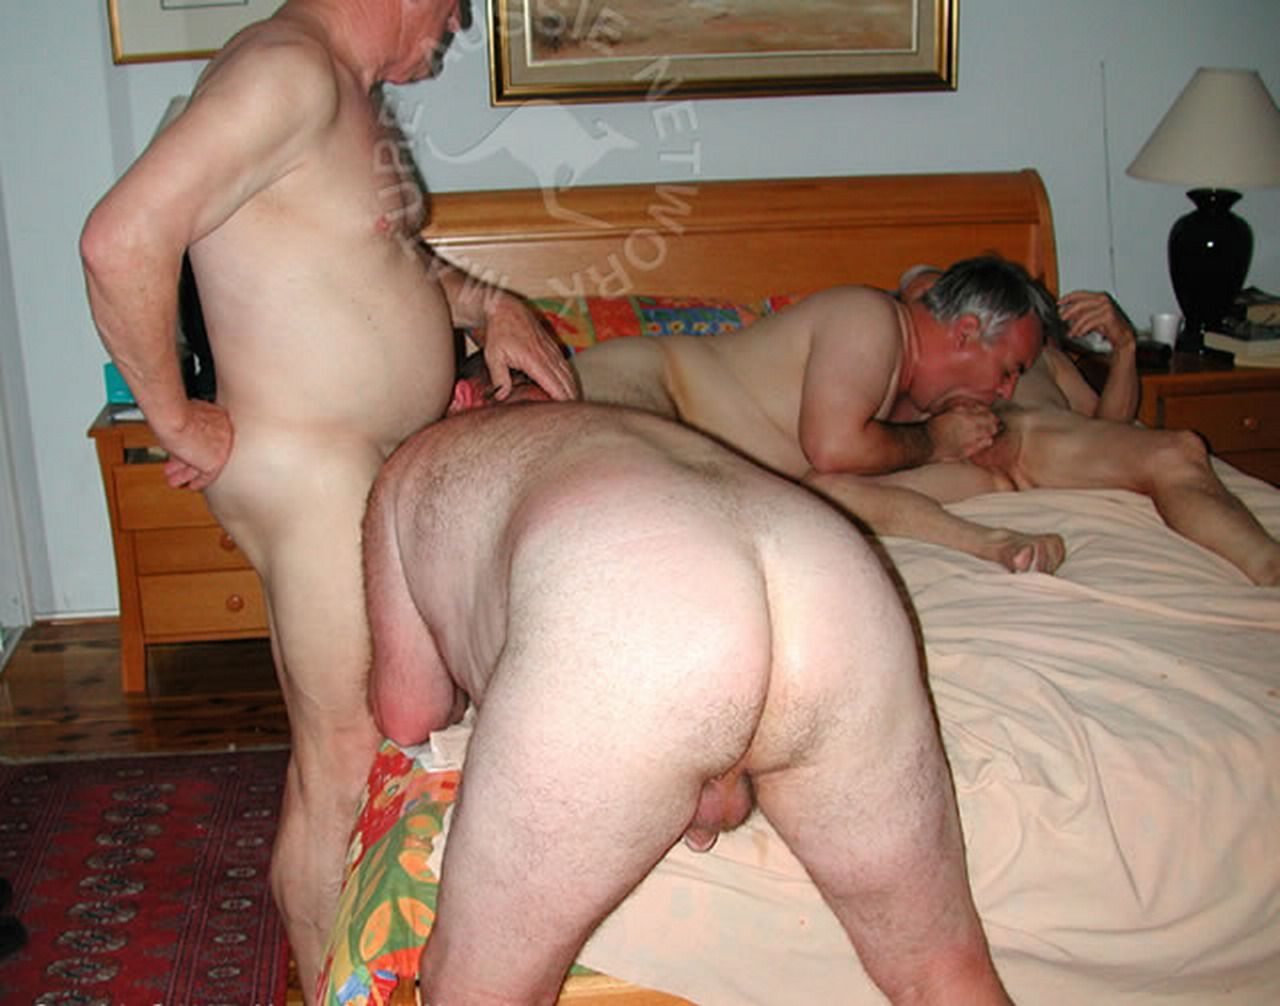 annonce gay beur vieux papy gay